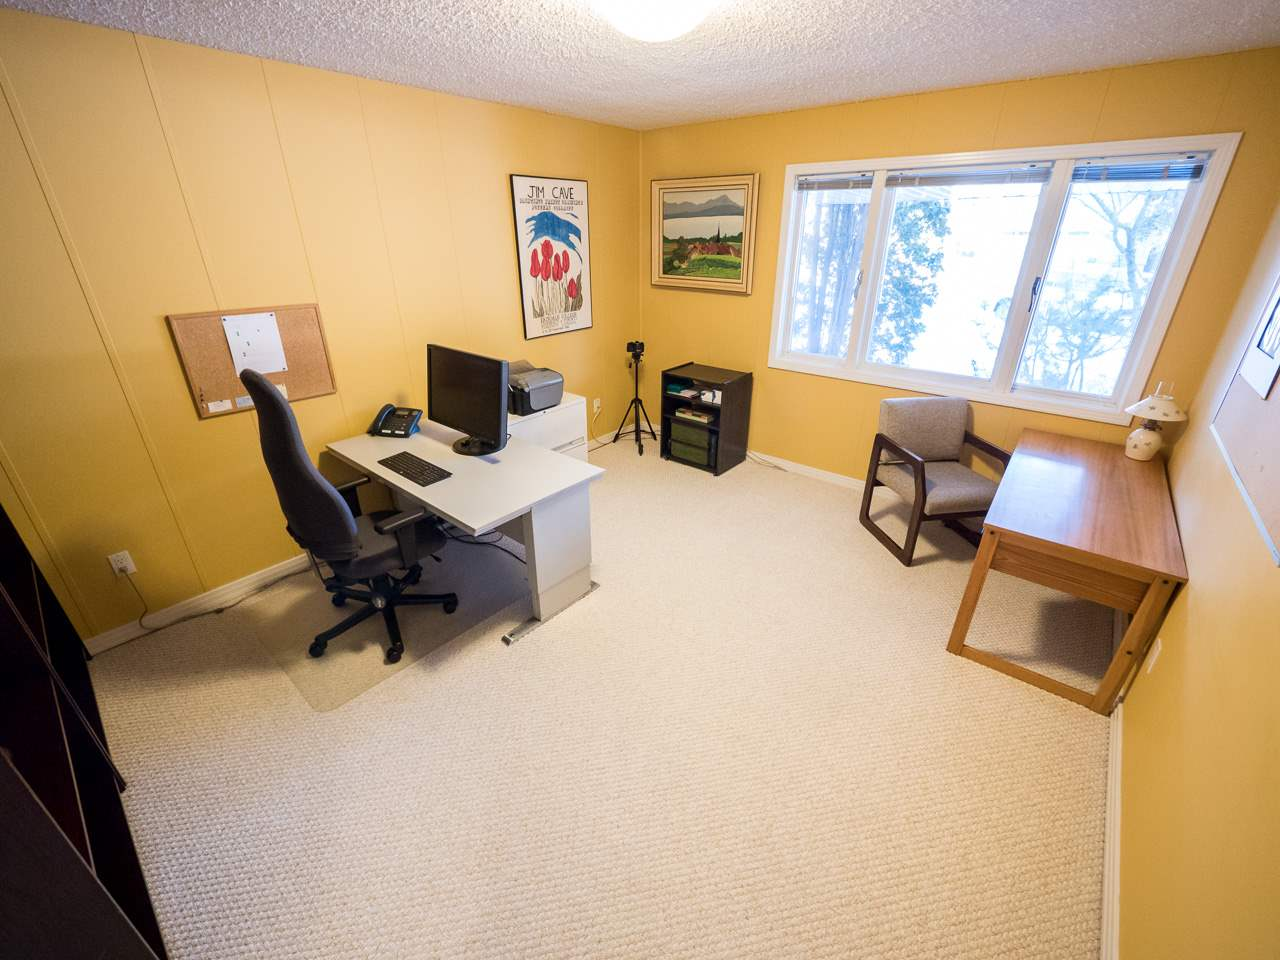 Just off the hallway at the front of the house. This Office is big enough for 3 desks easy.